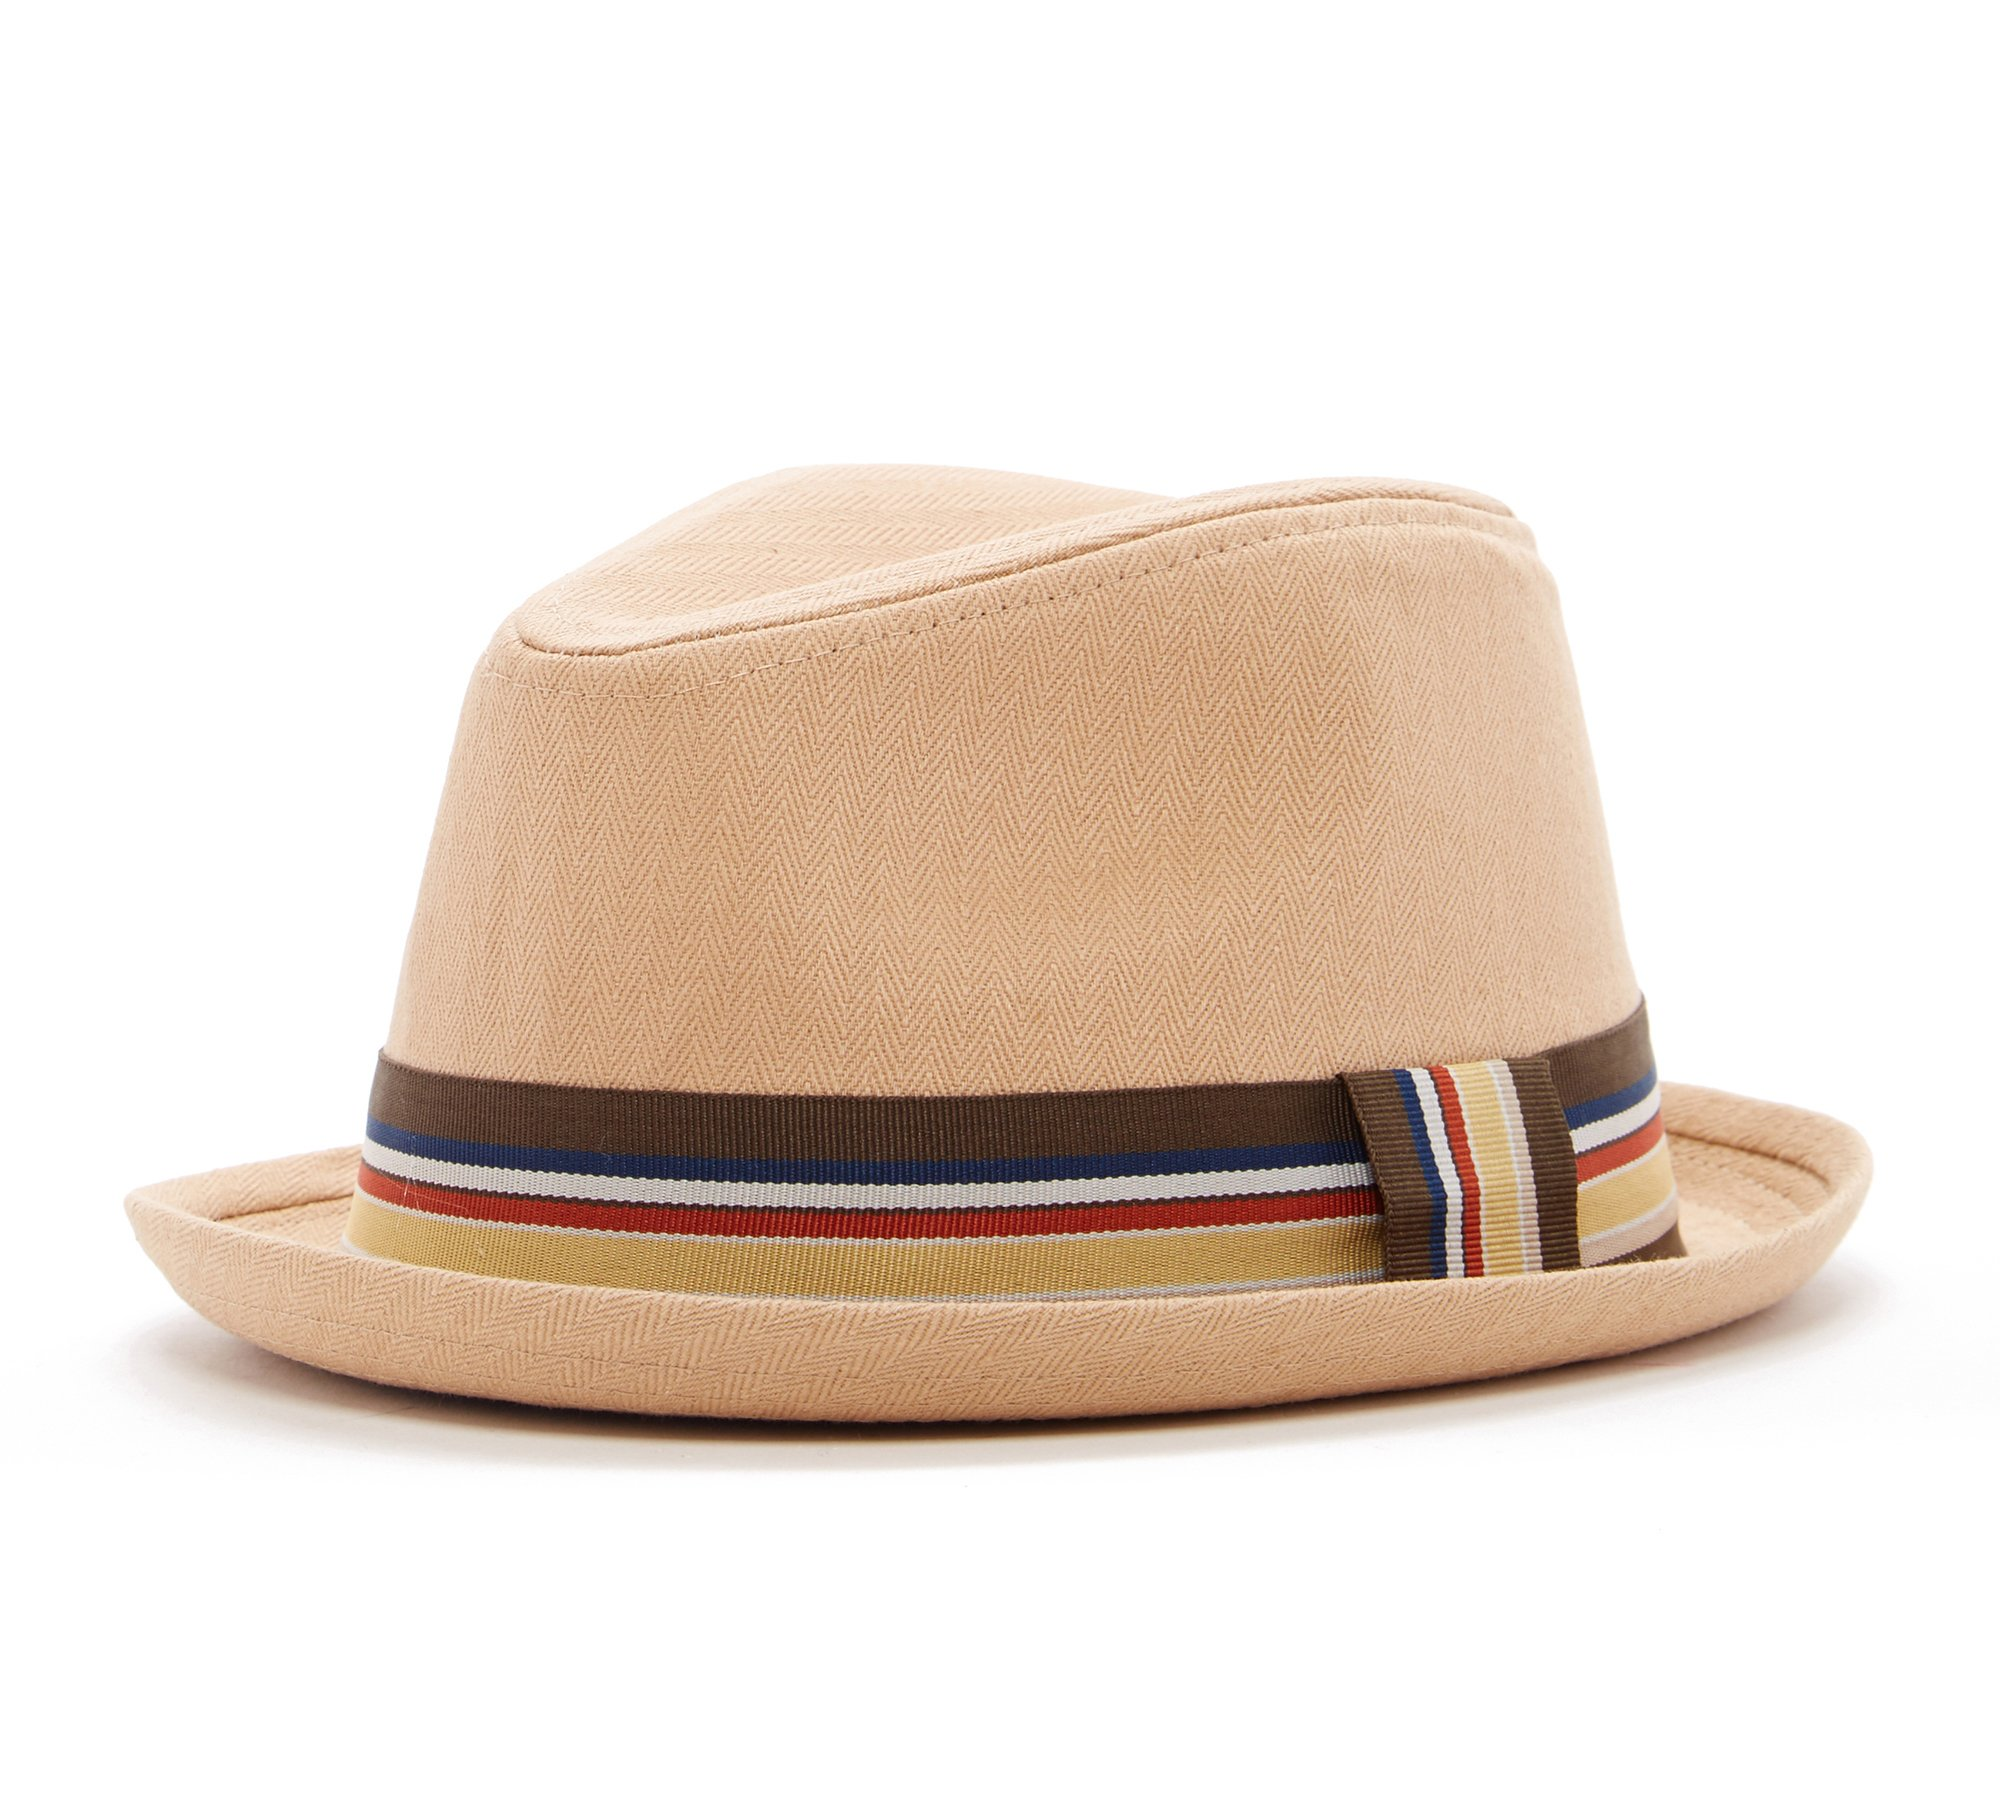 Born to Love Boy's Fedora Hat with Black Band (46 cm 6-12 Months, tan with Stripes)